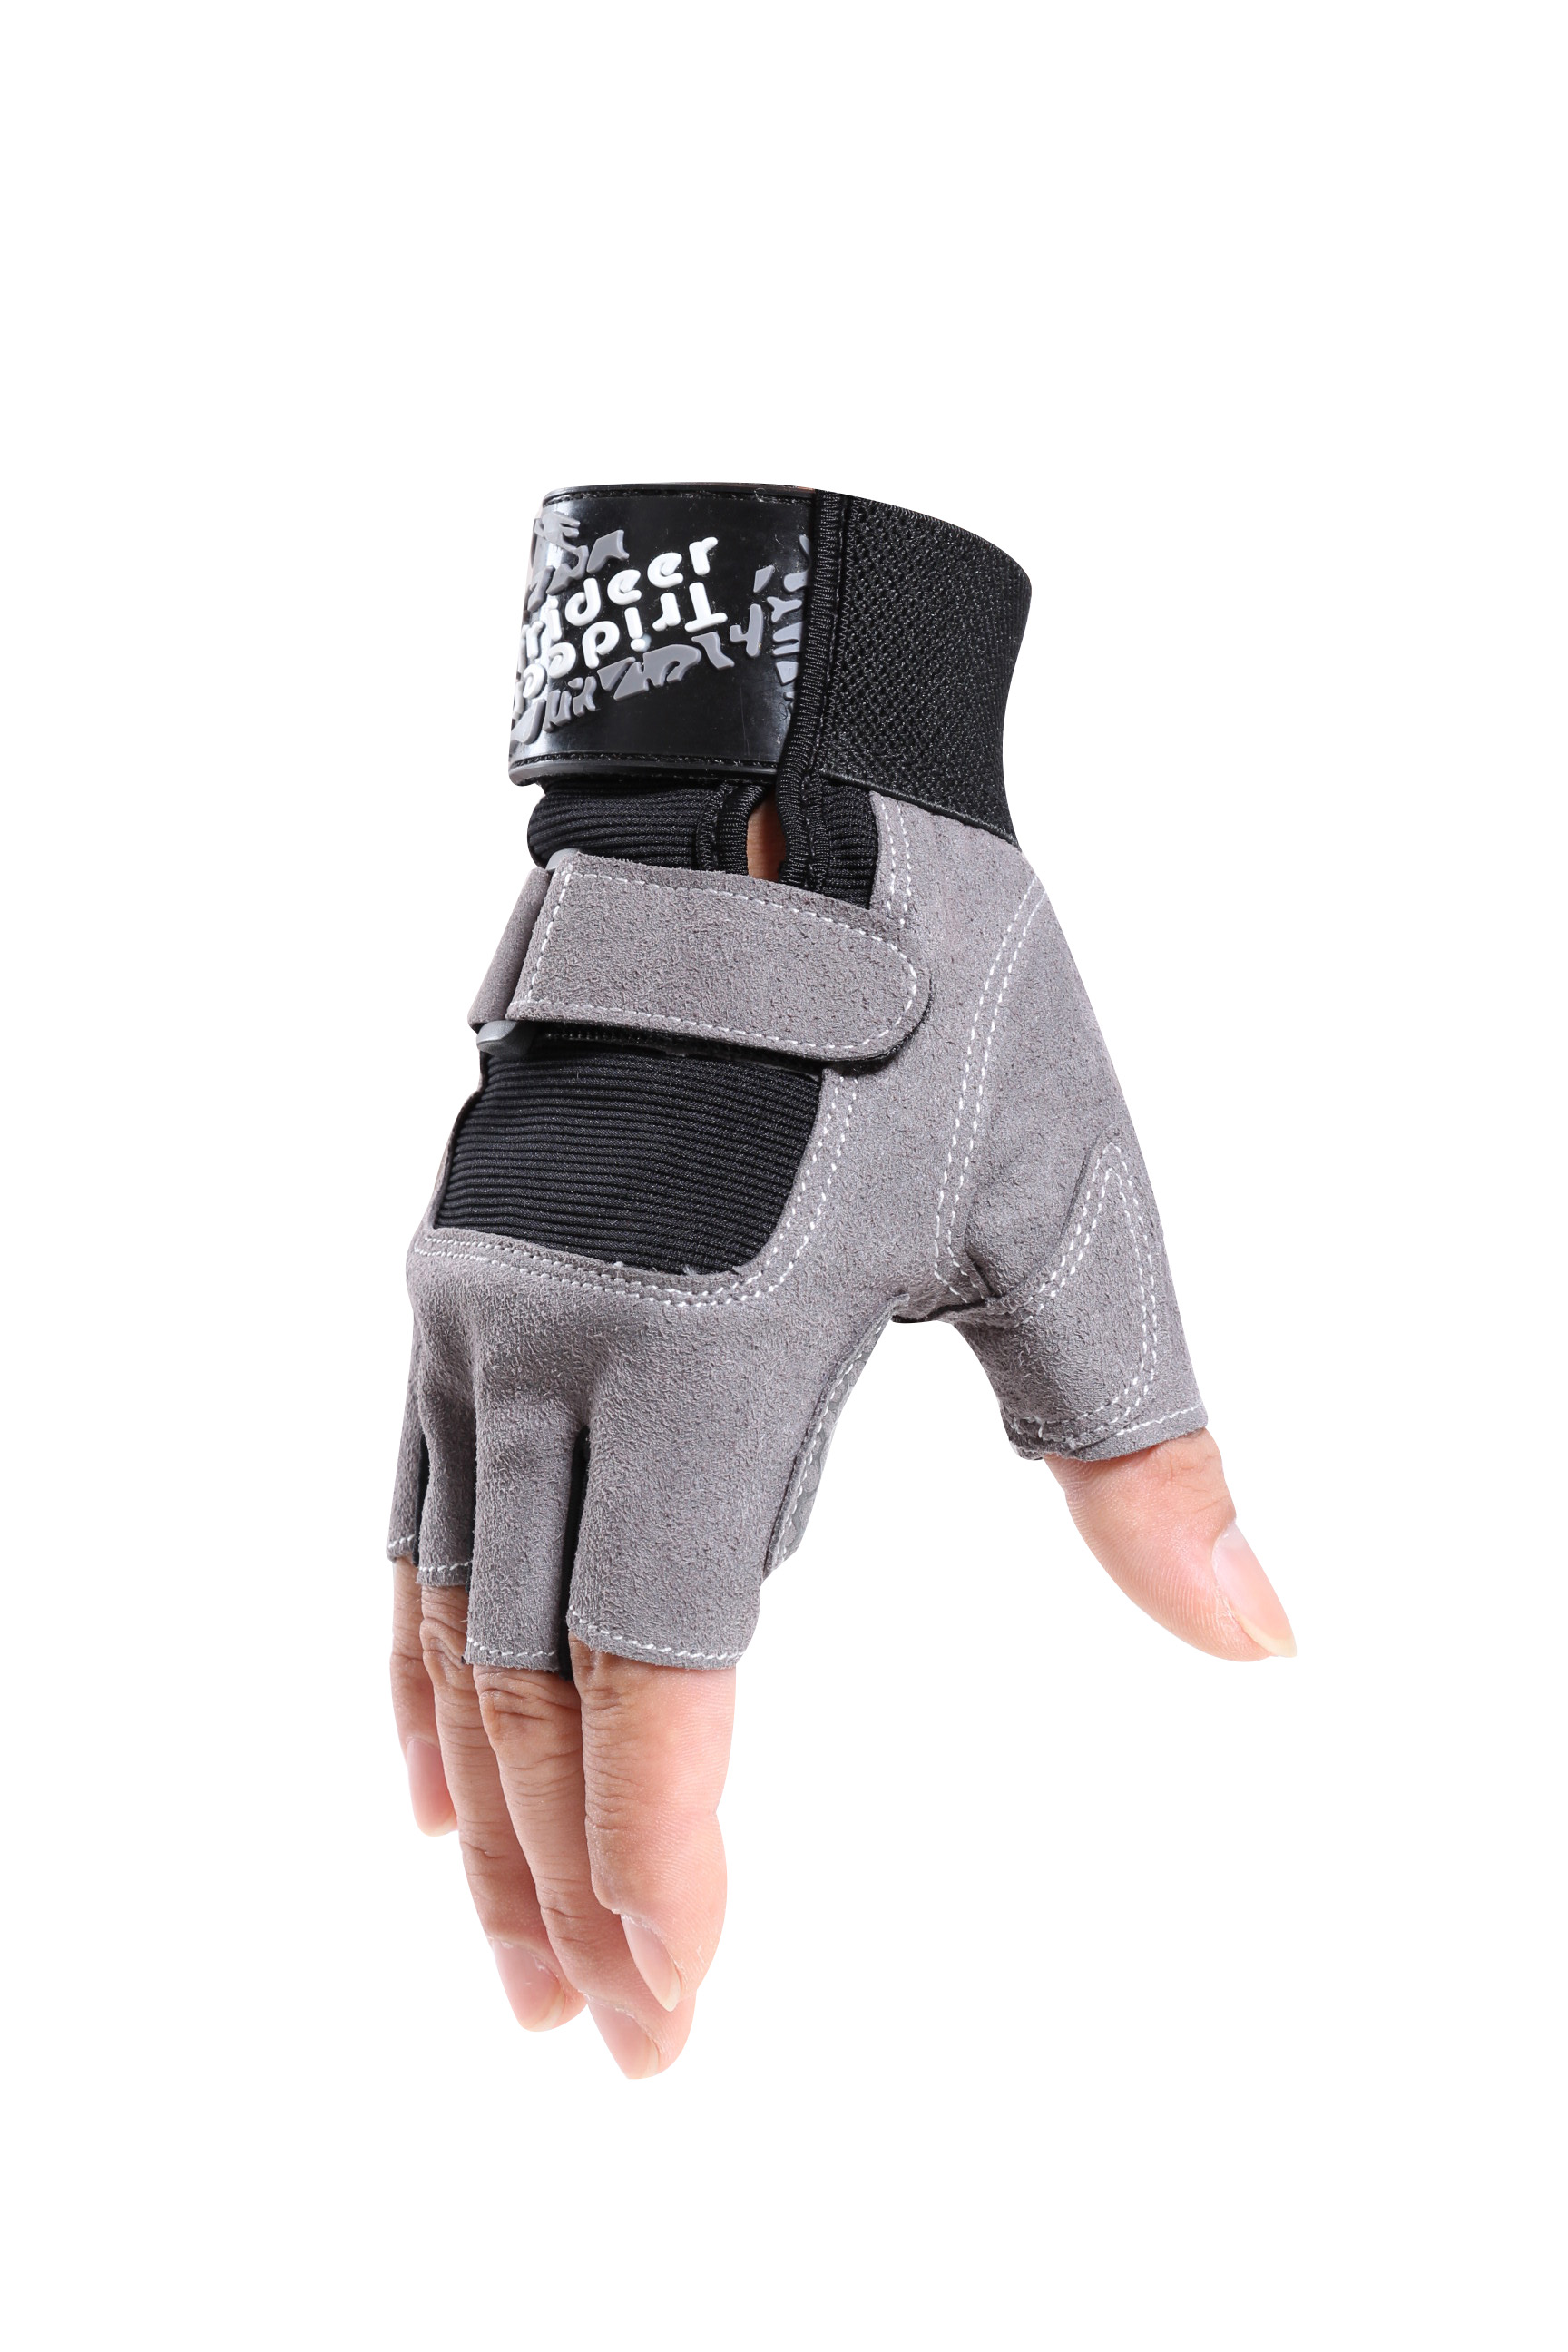 cycling gloves with cushion